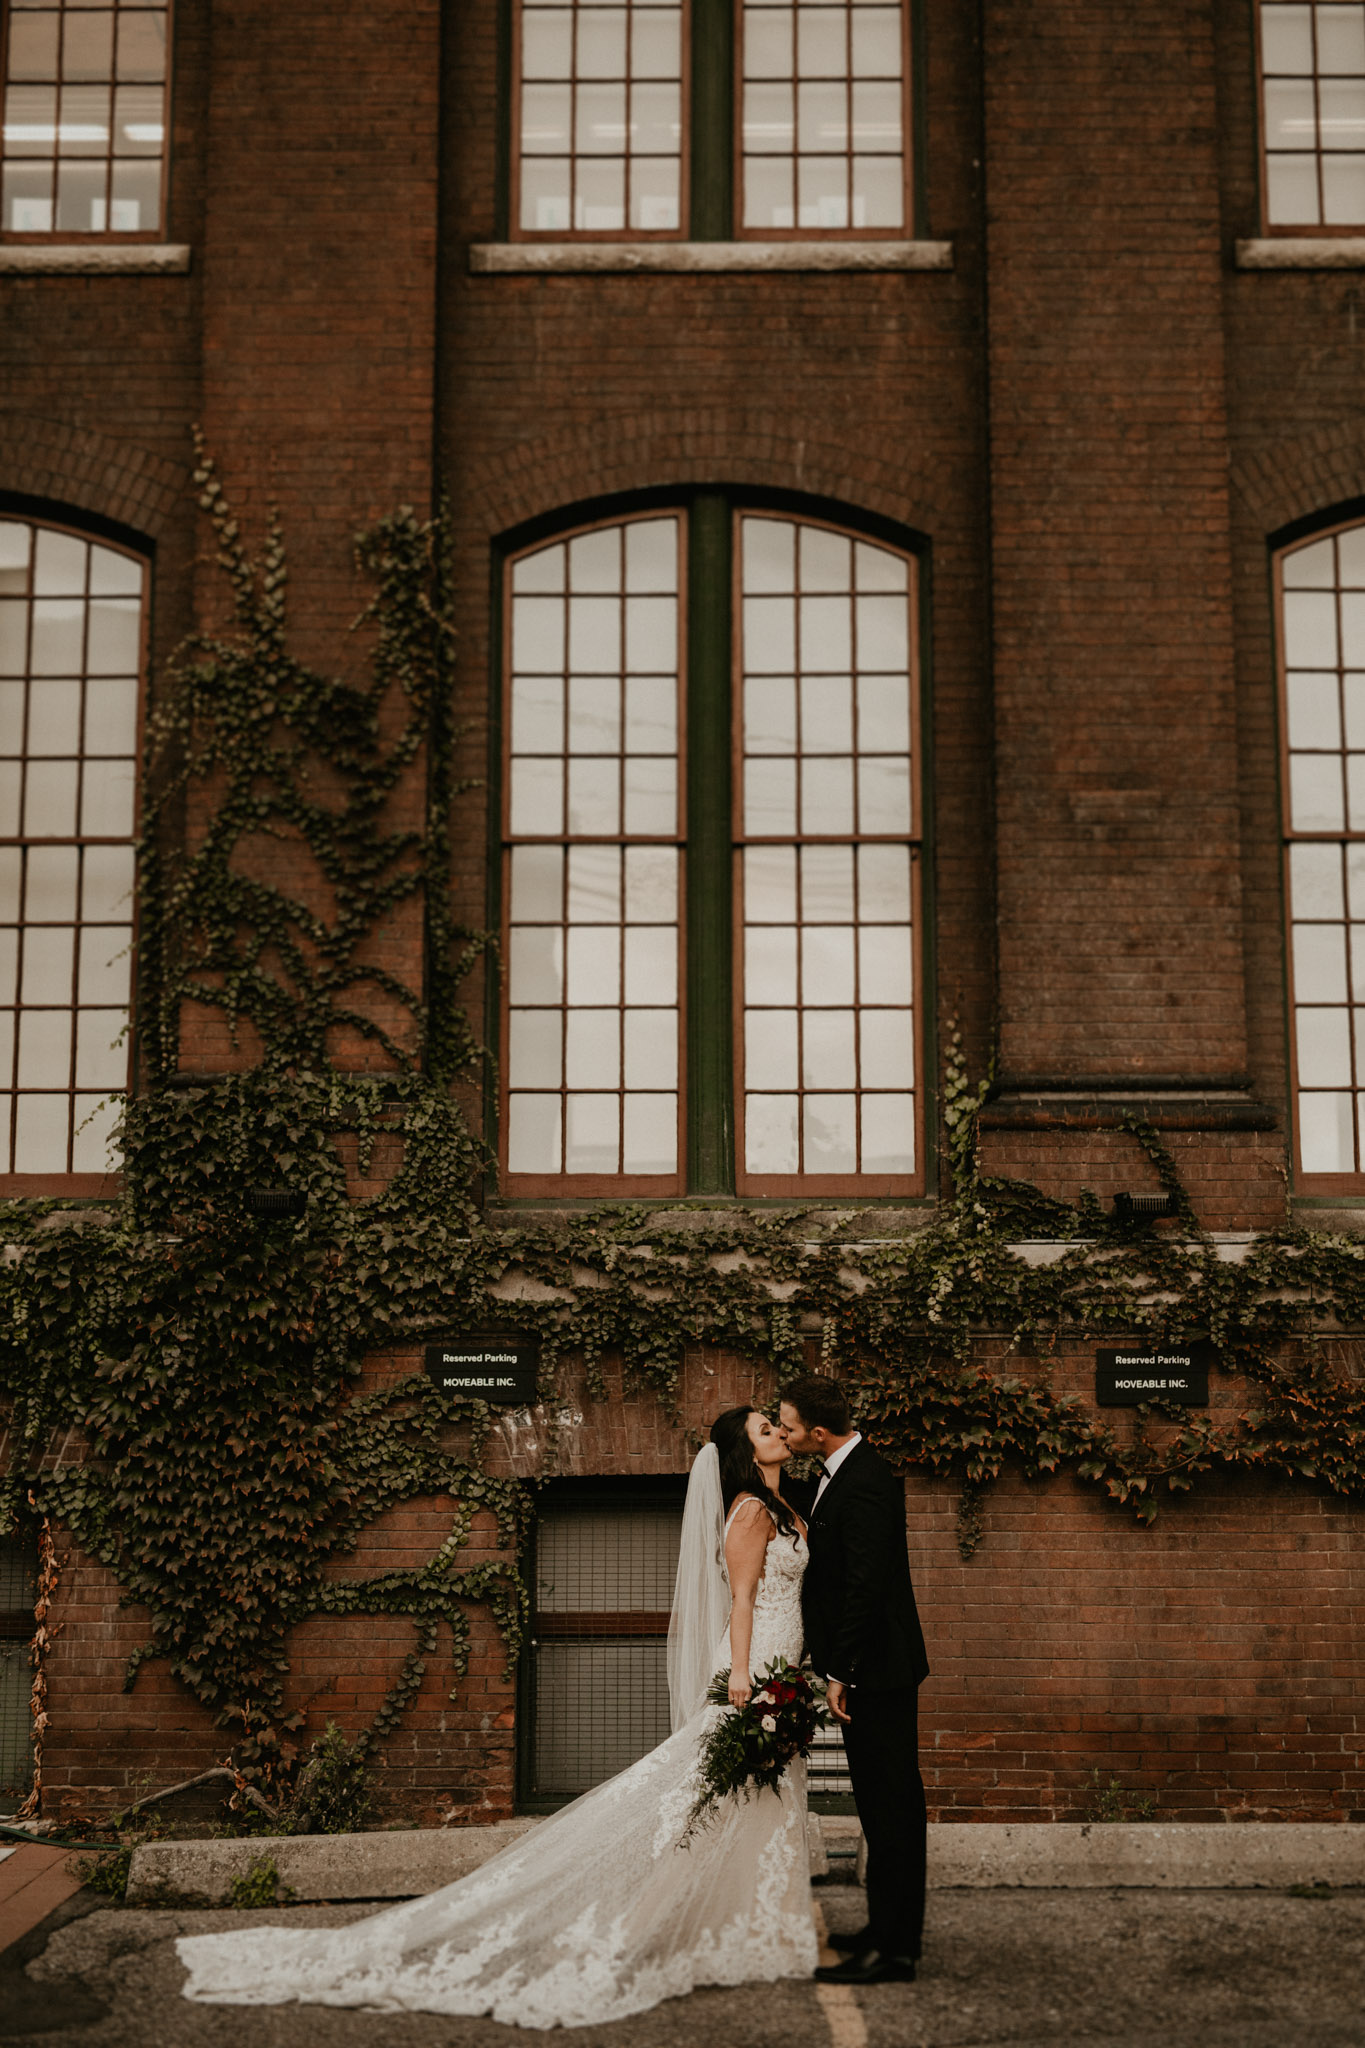 Liberty Village Wedding - newlyweds kiss in front of brick building with vines